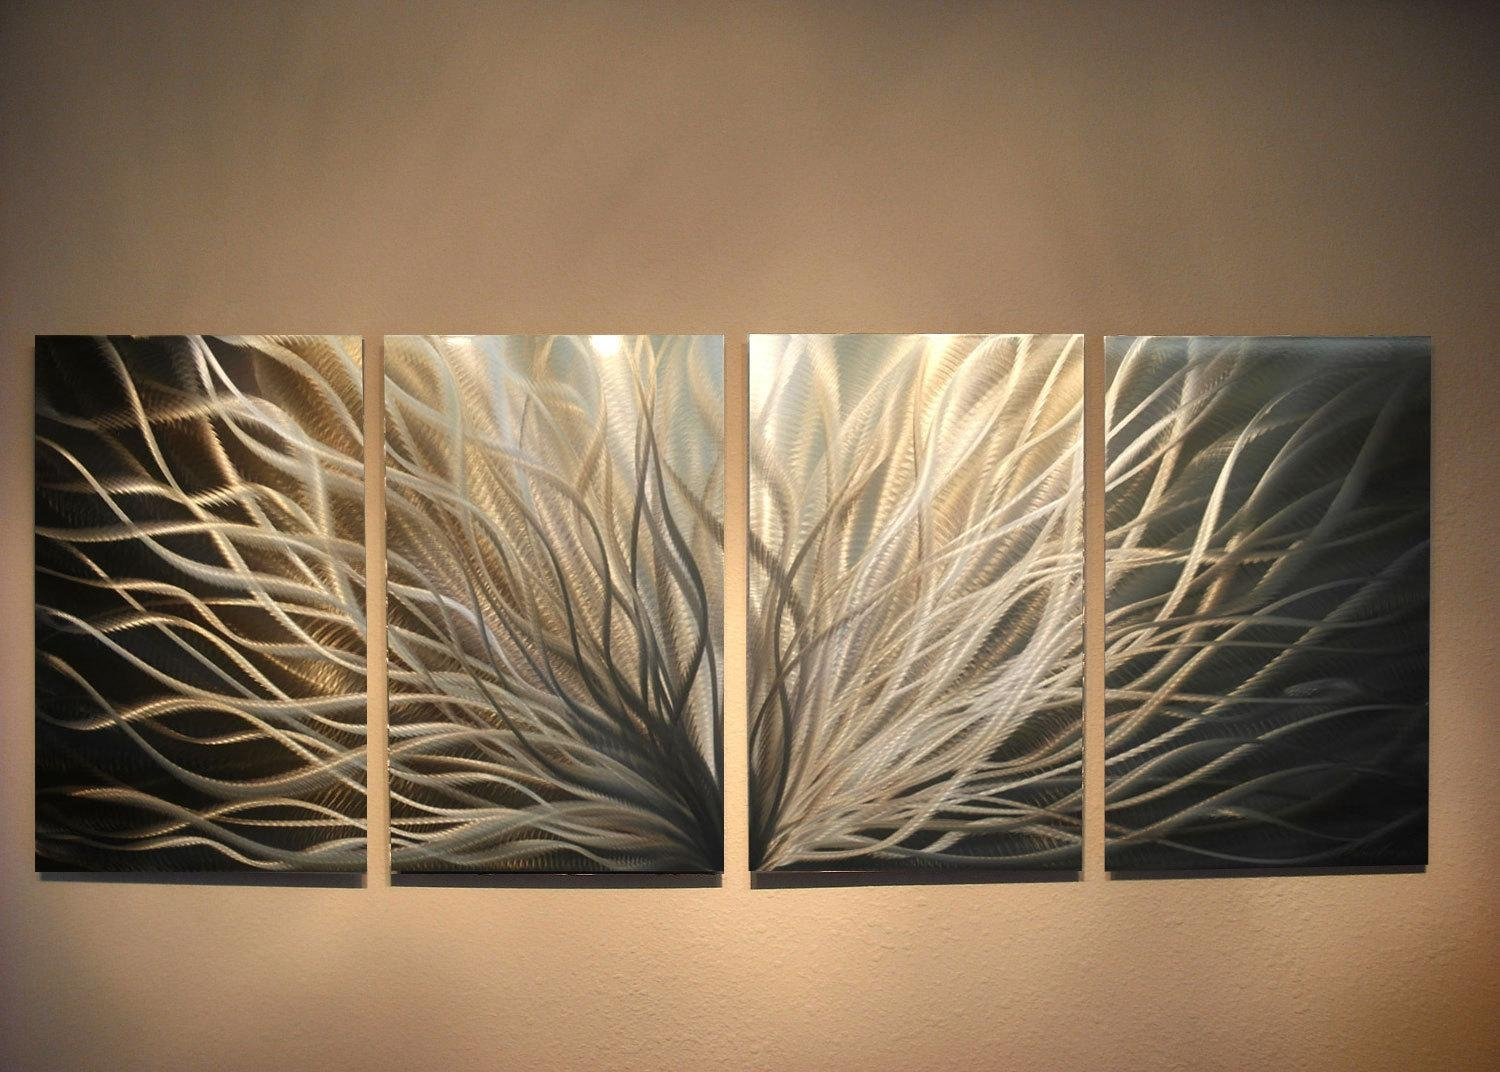 Metal Art Wall Art Decor Aluminum Abstract Contemporary Modern Regarding Metal Art For Wall Hangings (Image 7 of 20)